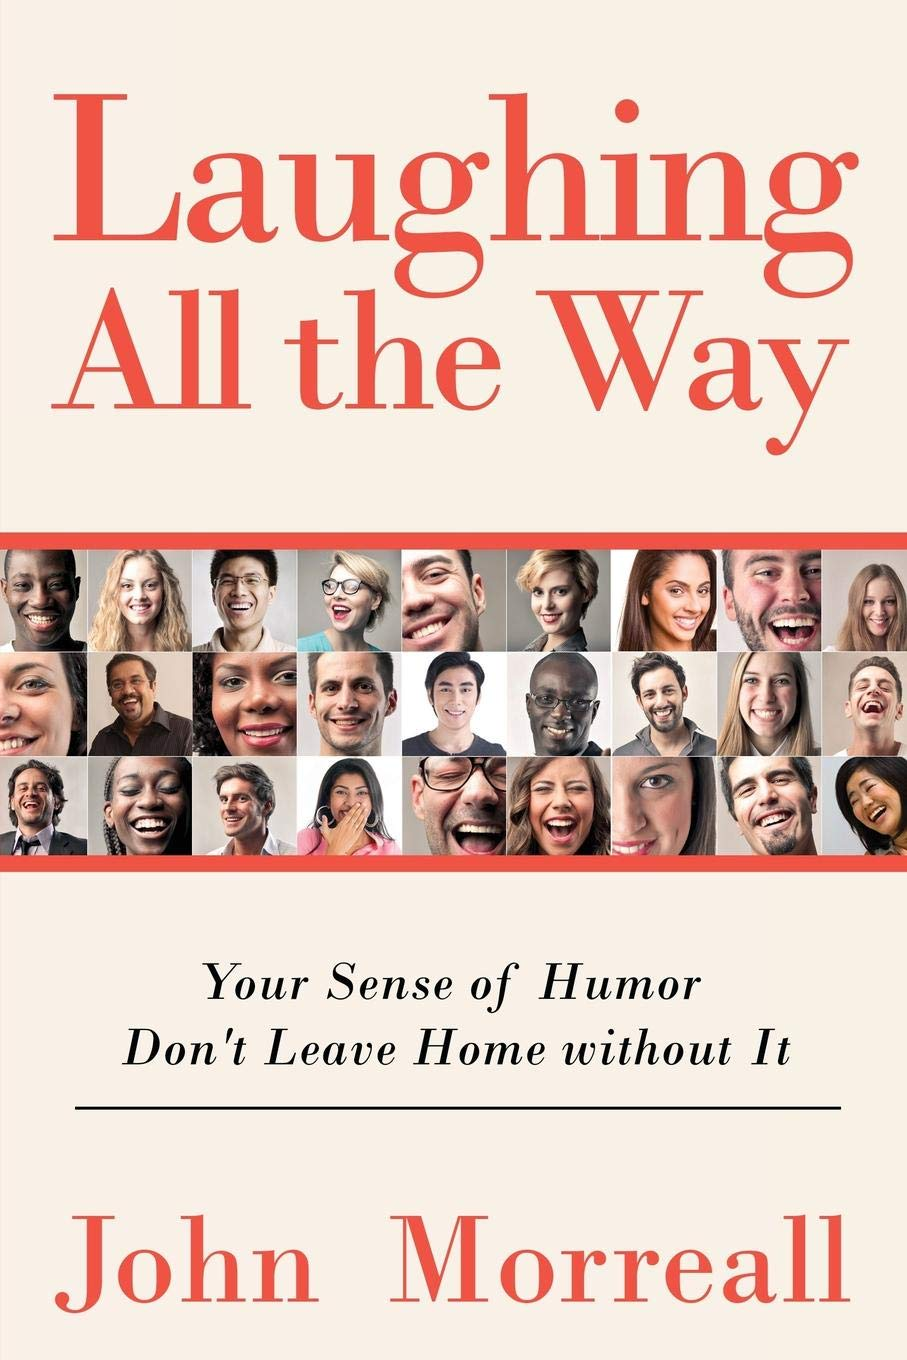 Your Sense of Humor: Don't Leave Home Without It